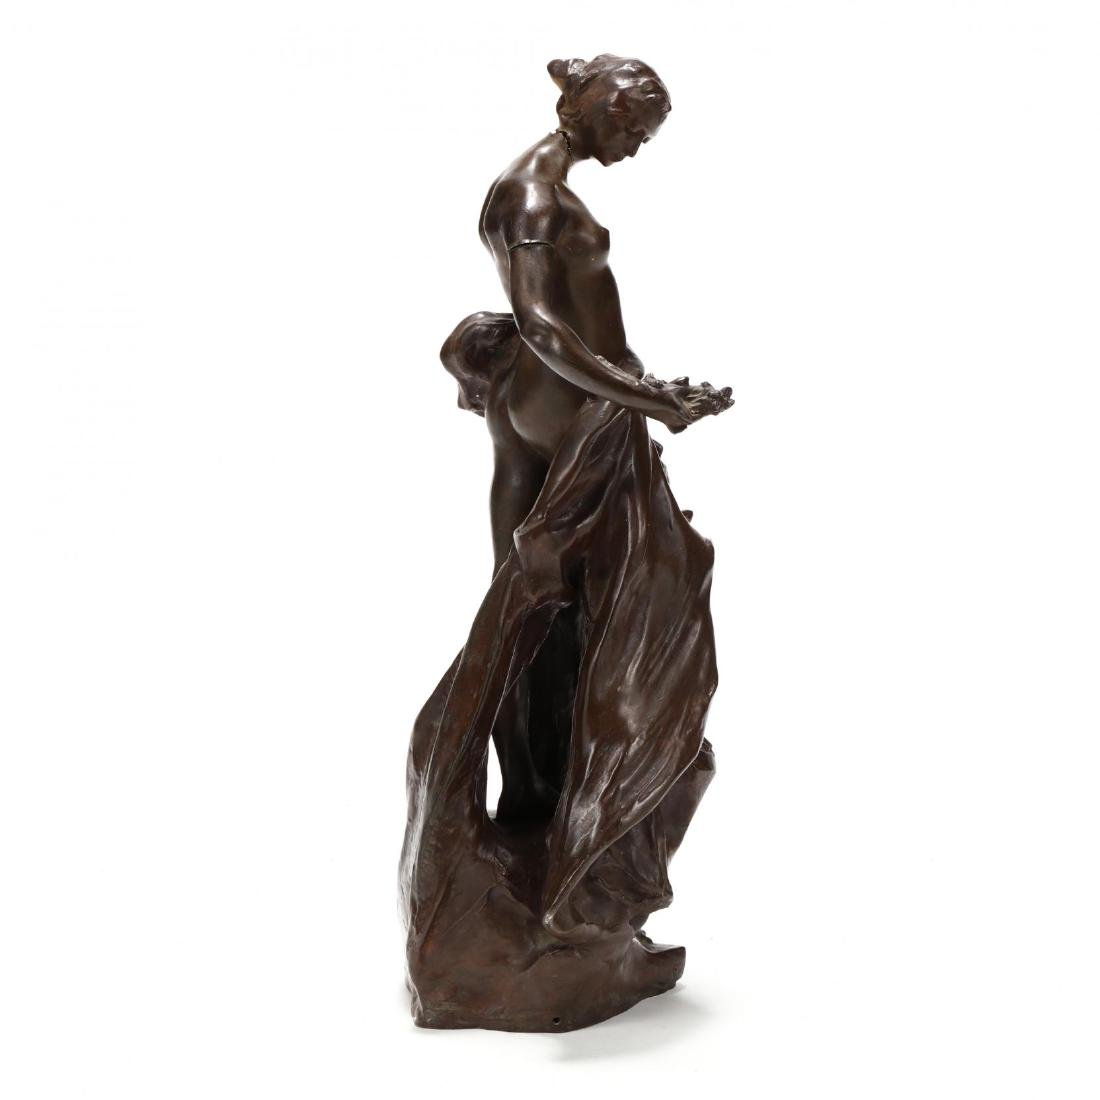 Pierre Devaux (French 1865-1938), Bronze Sculpture of a - 2